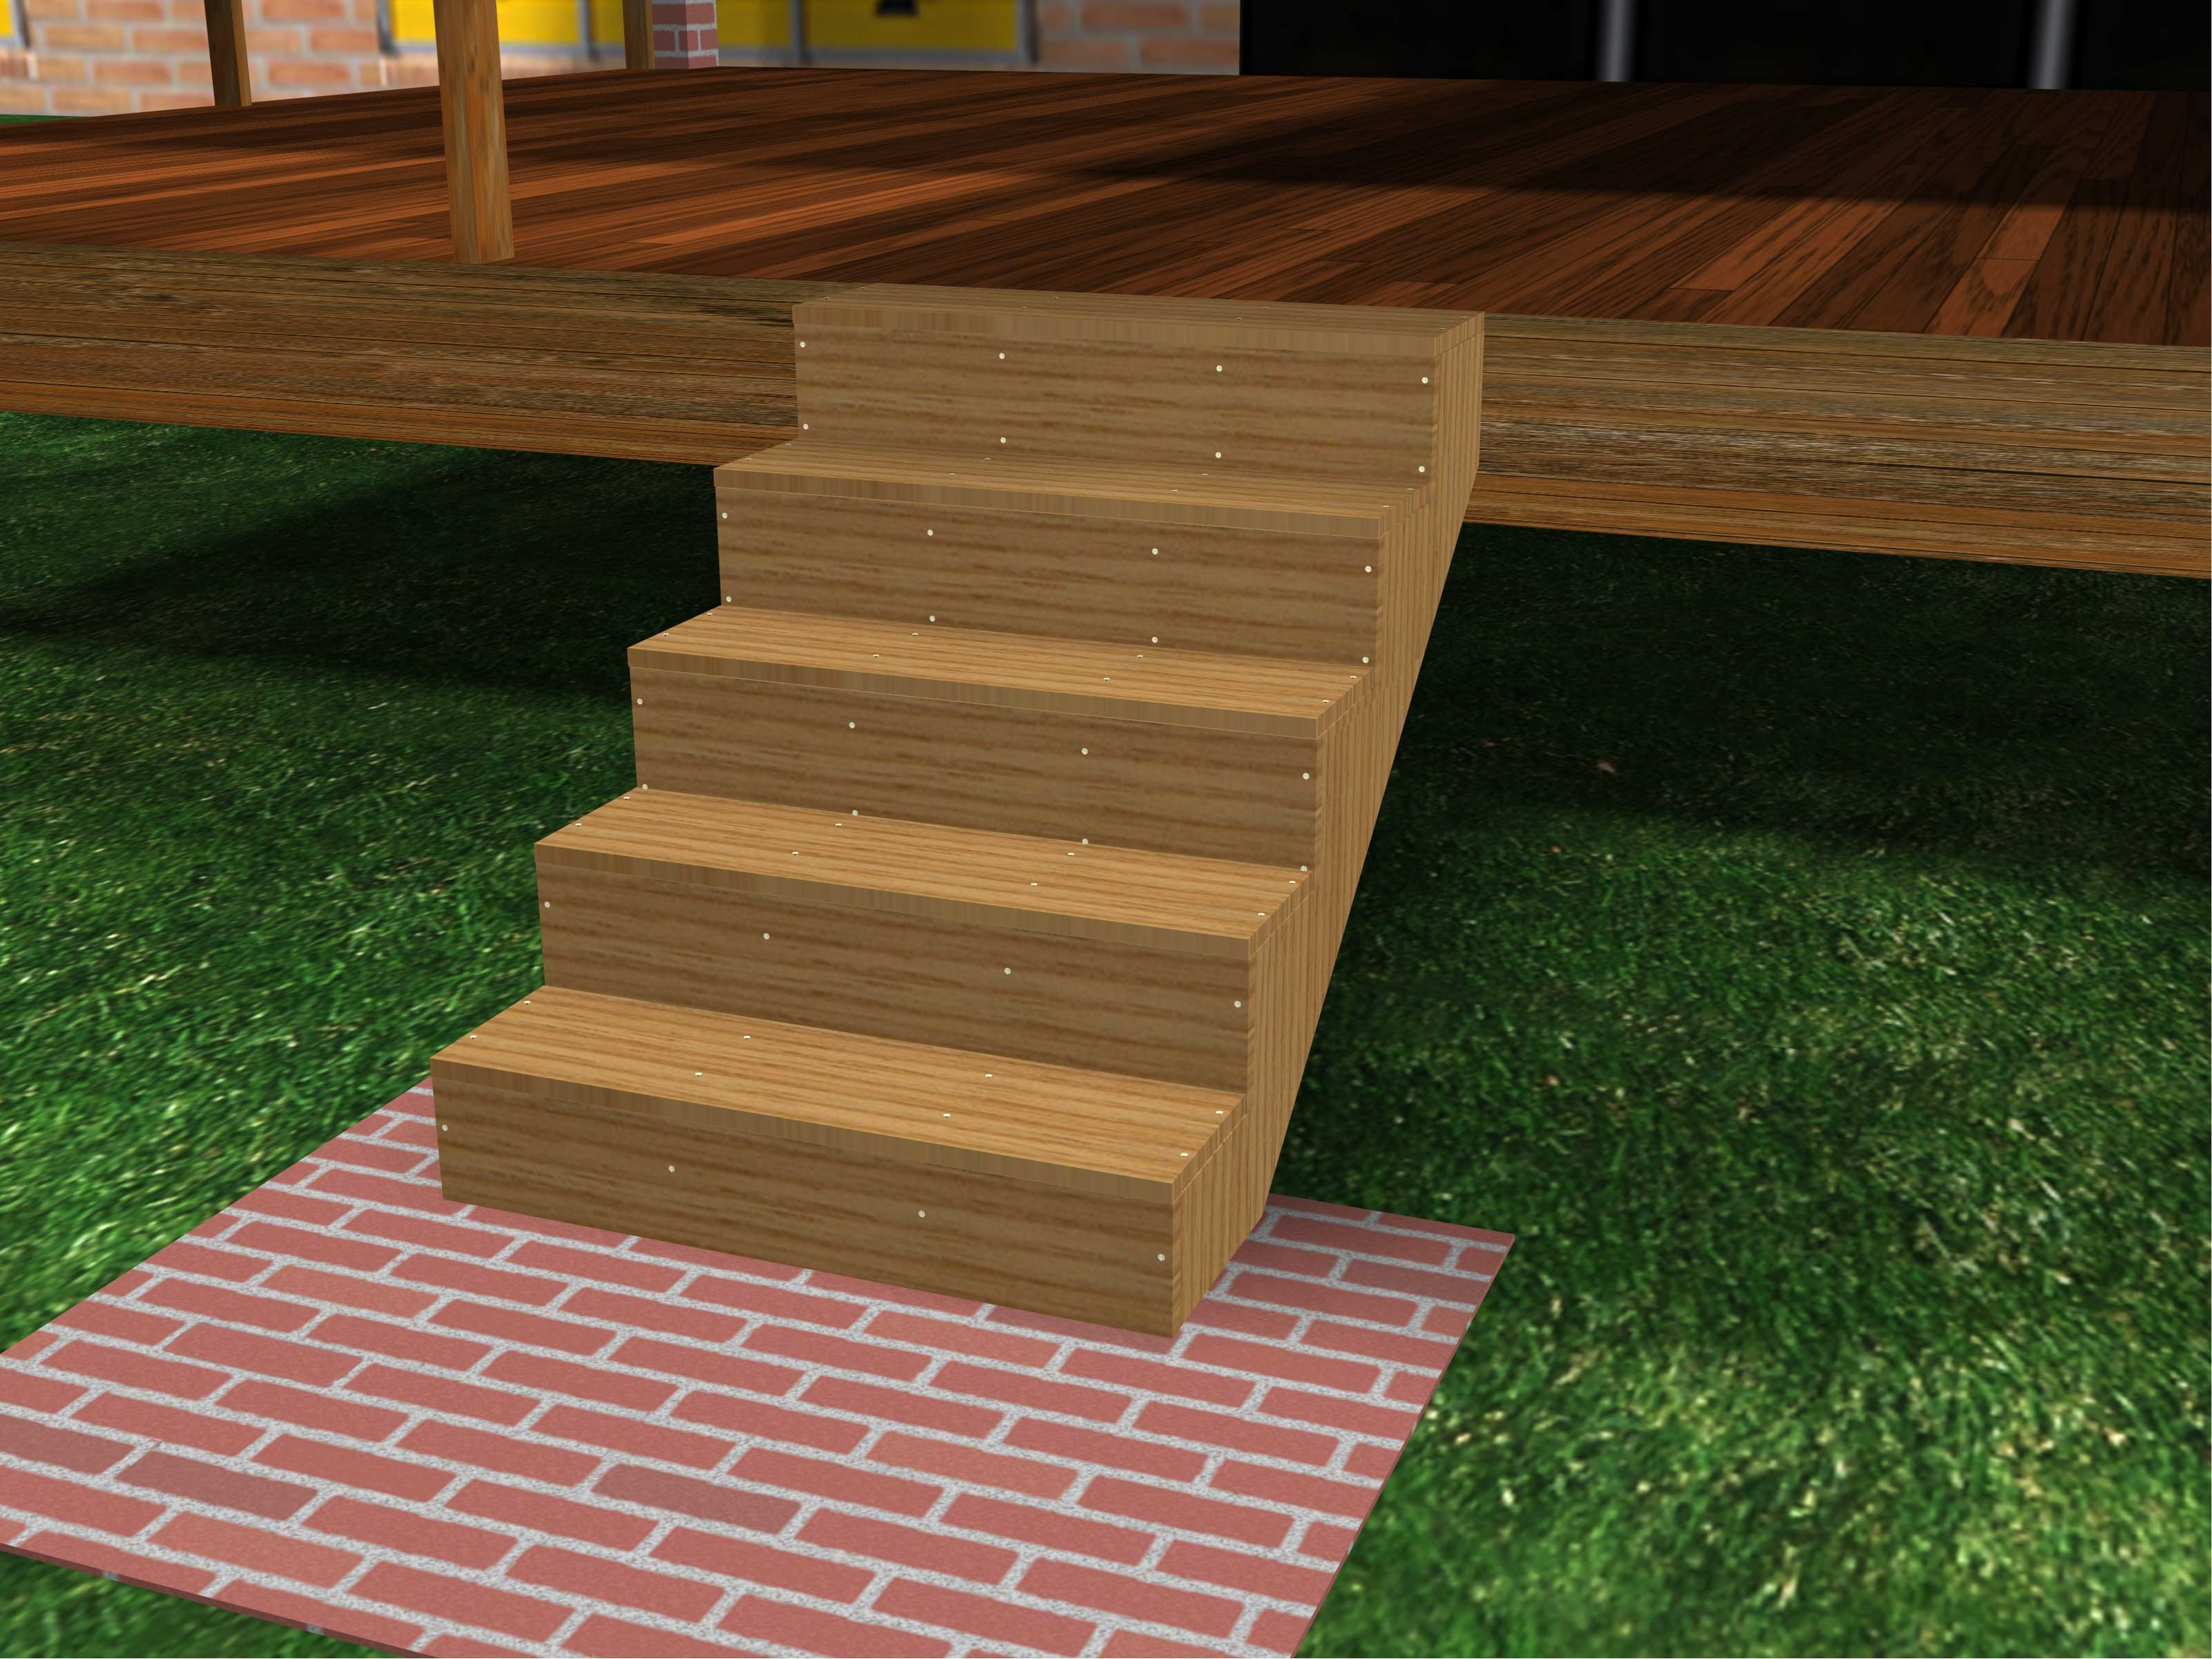 How To Build Porch Steps 13 Steps With Pictures Wikihow | Pre Built Outdoor Steps | Exit | Premade | Prefabricated | 4 Step Deck | Residential Outdoor Metal